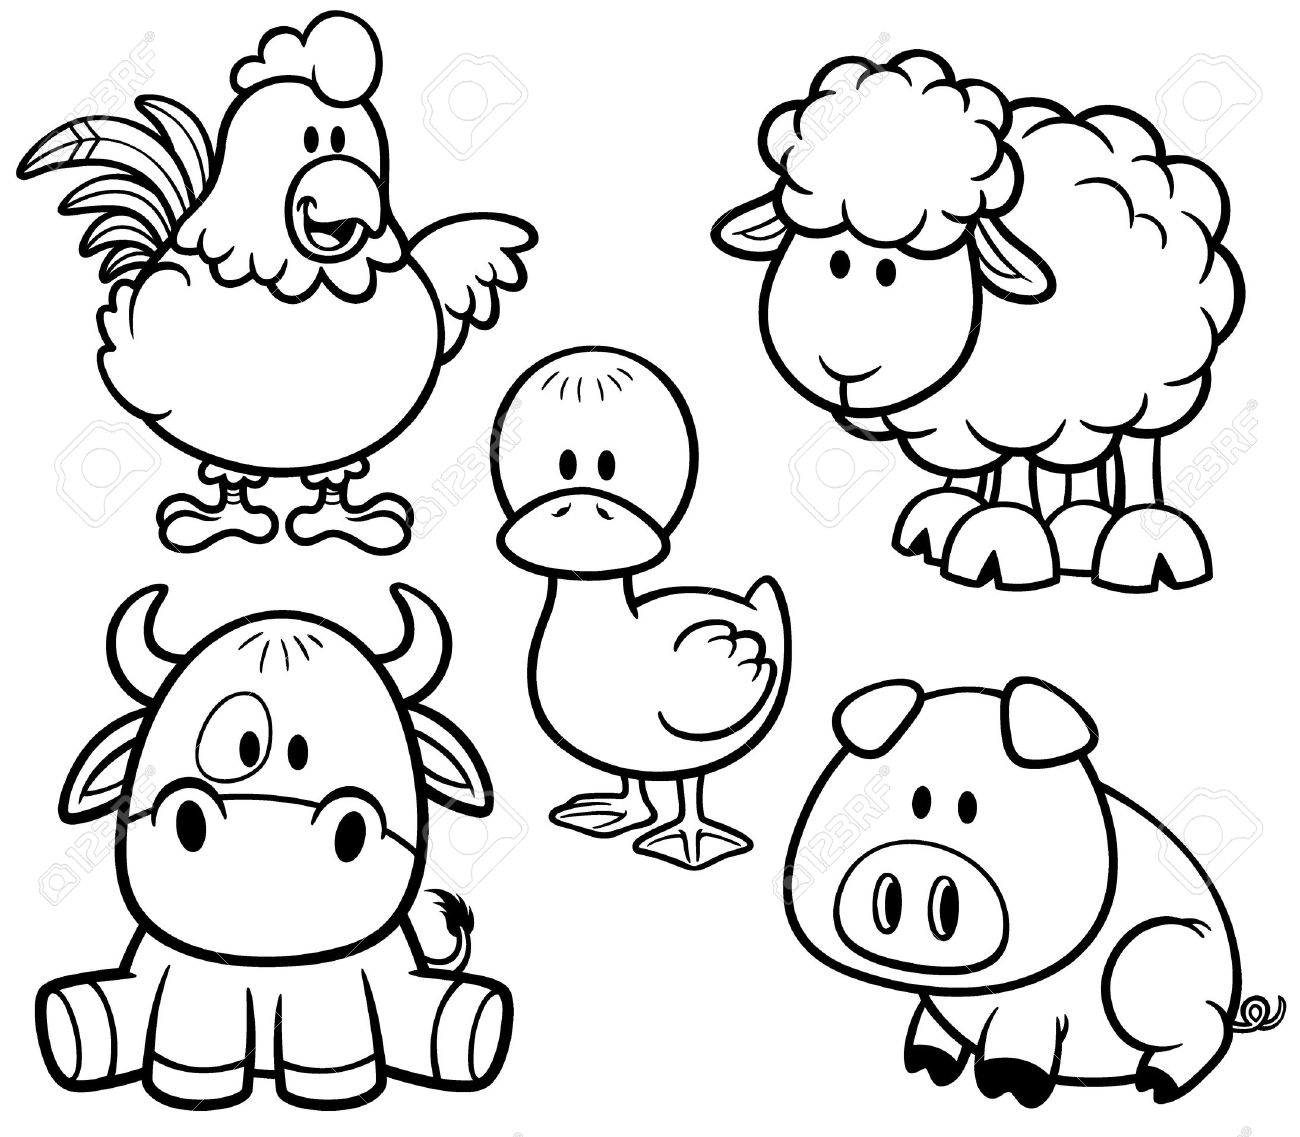 animal coloring coloring pages animals dr odd animal coloring